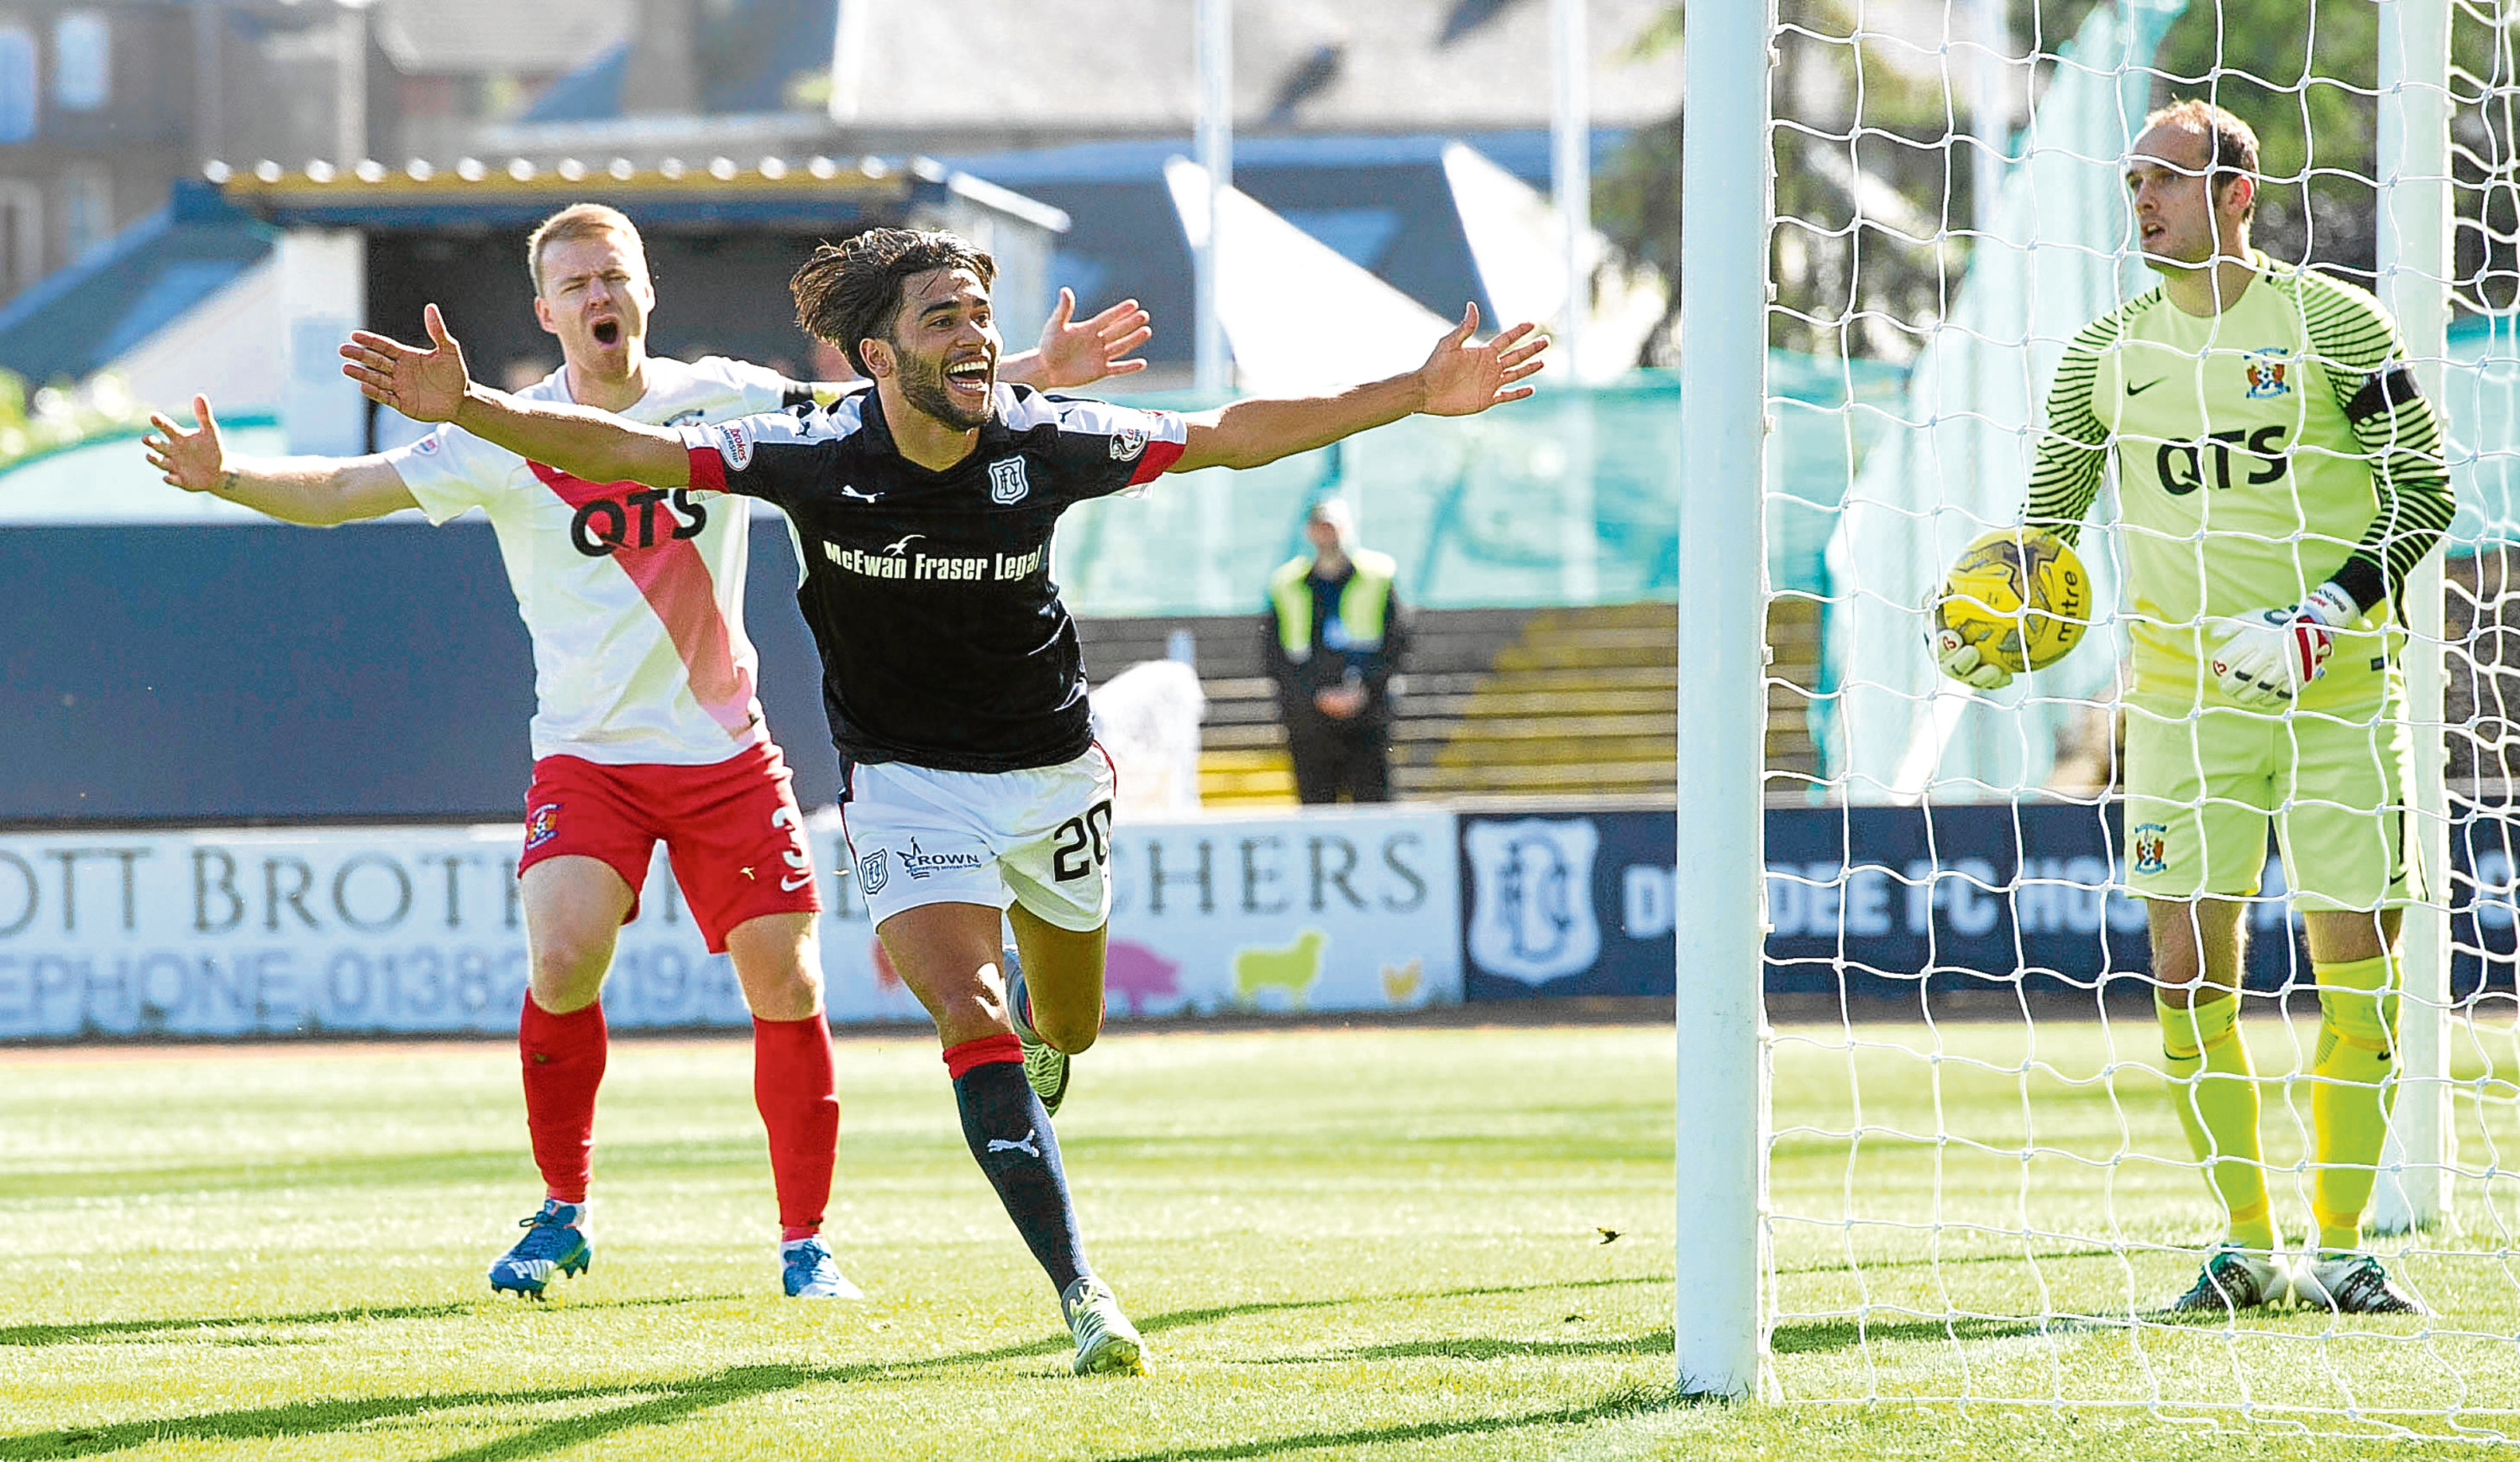 Faissal El Bakhtaoui celebrates scoring for Dundee the last time Kilmarnock visited Dens in September. The game finished 1-1.